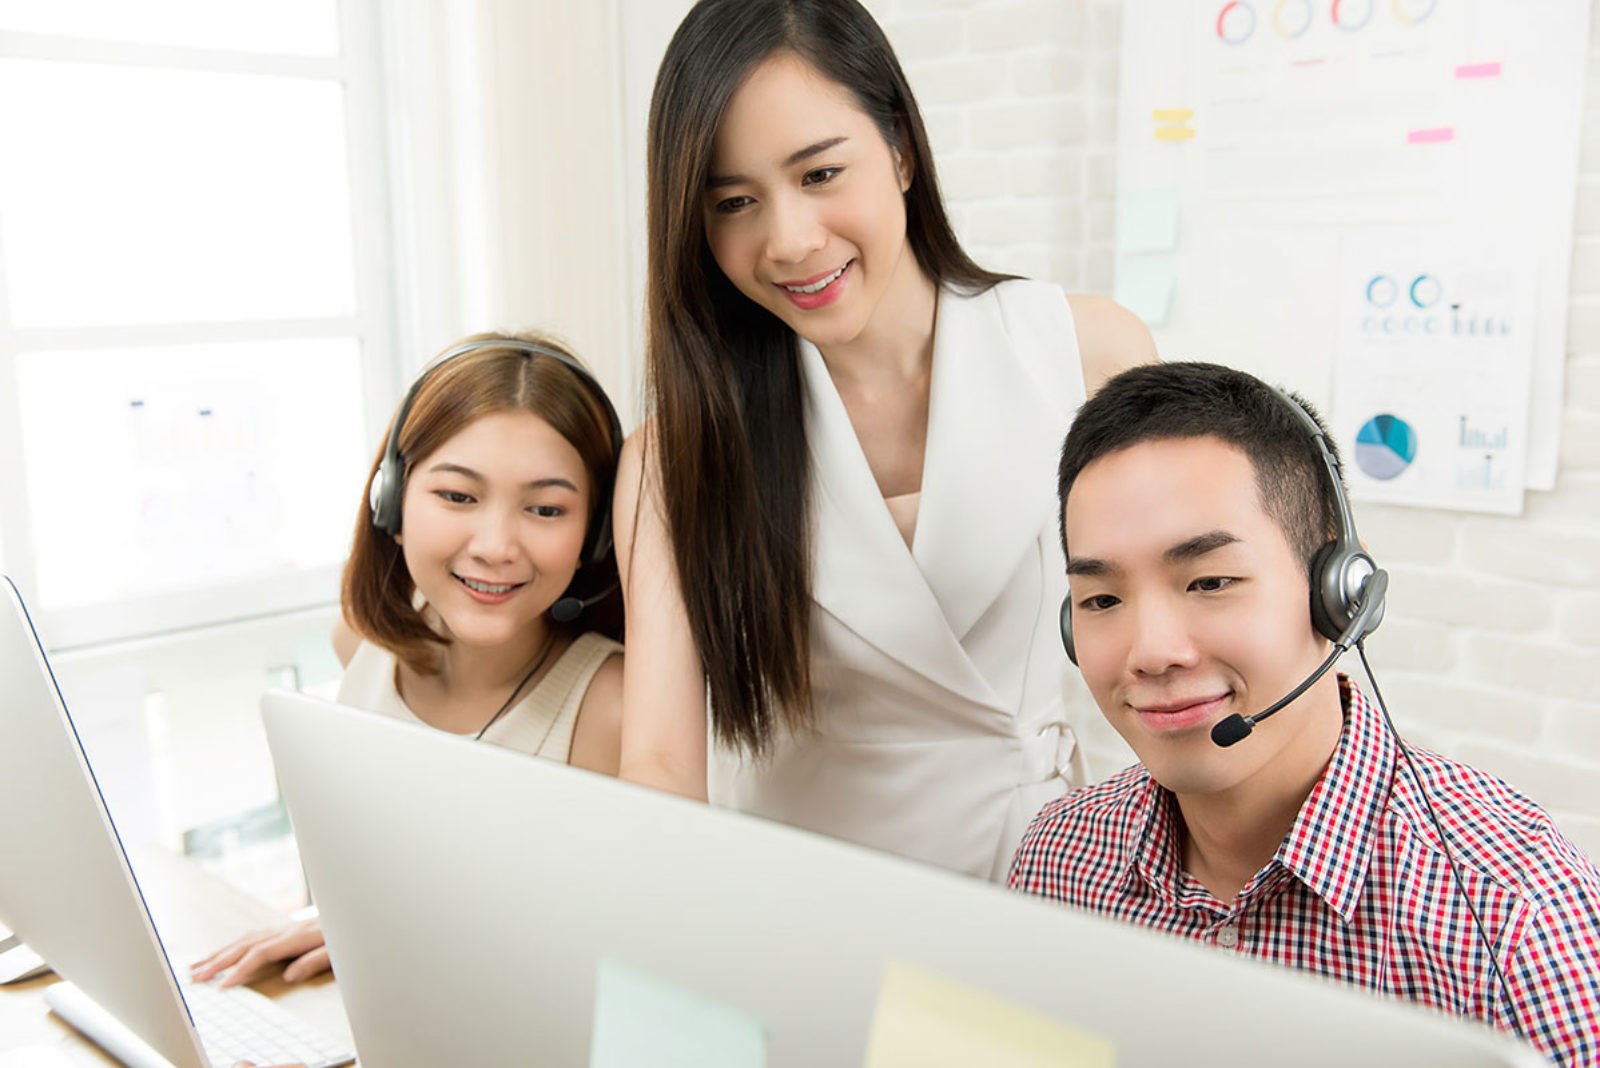 5 Reasons Startups Should Invest in Excellent Customer Service